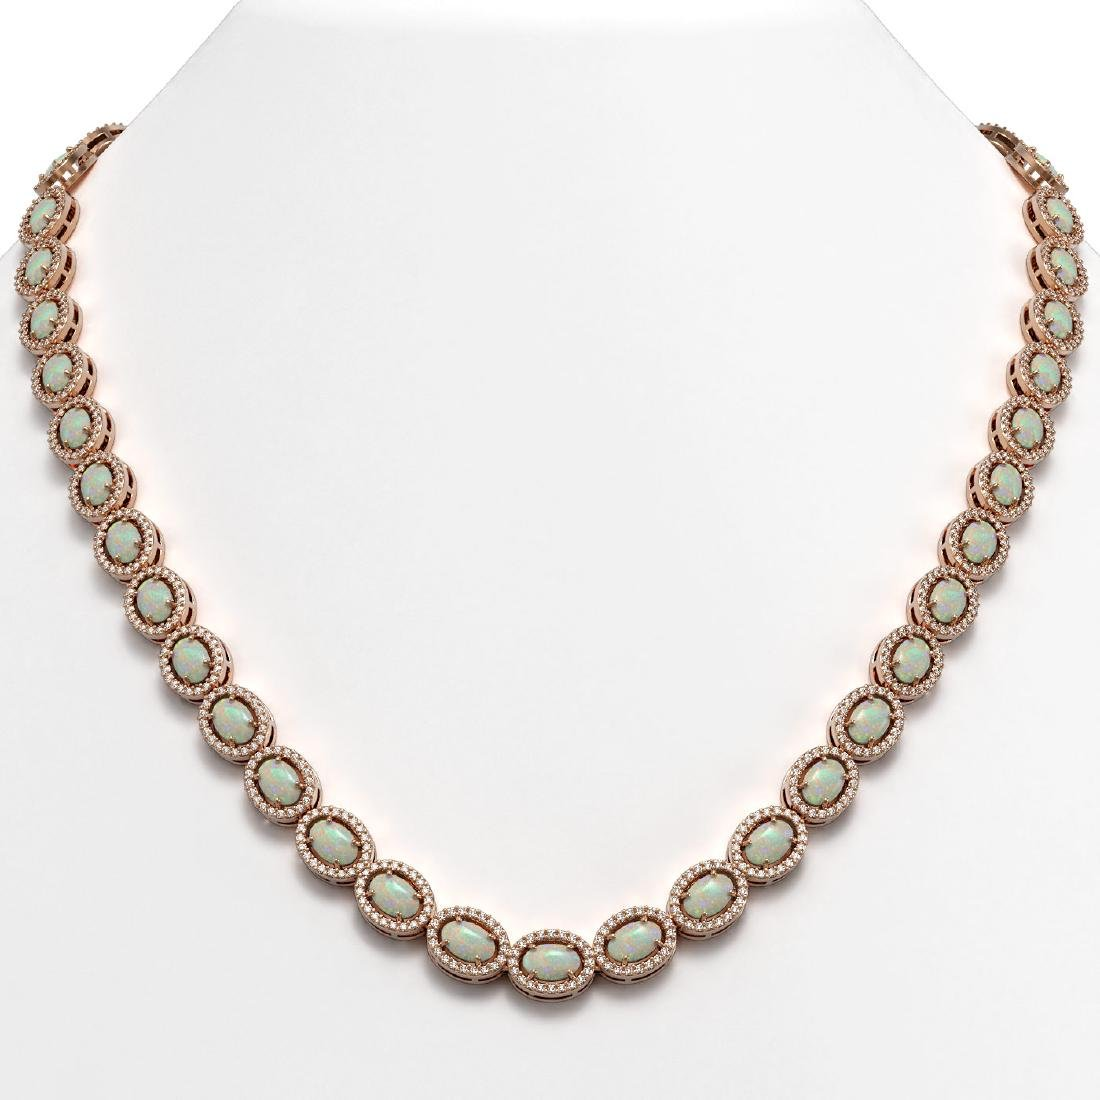 21.21 CTW Opal & Diamond Halo Necklace 10K Rose Gold